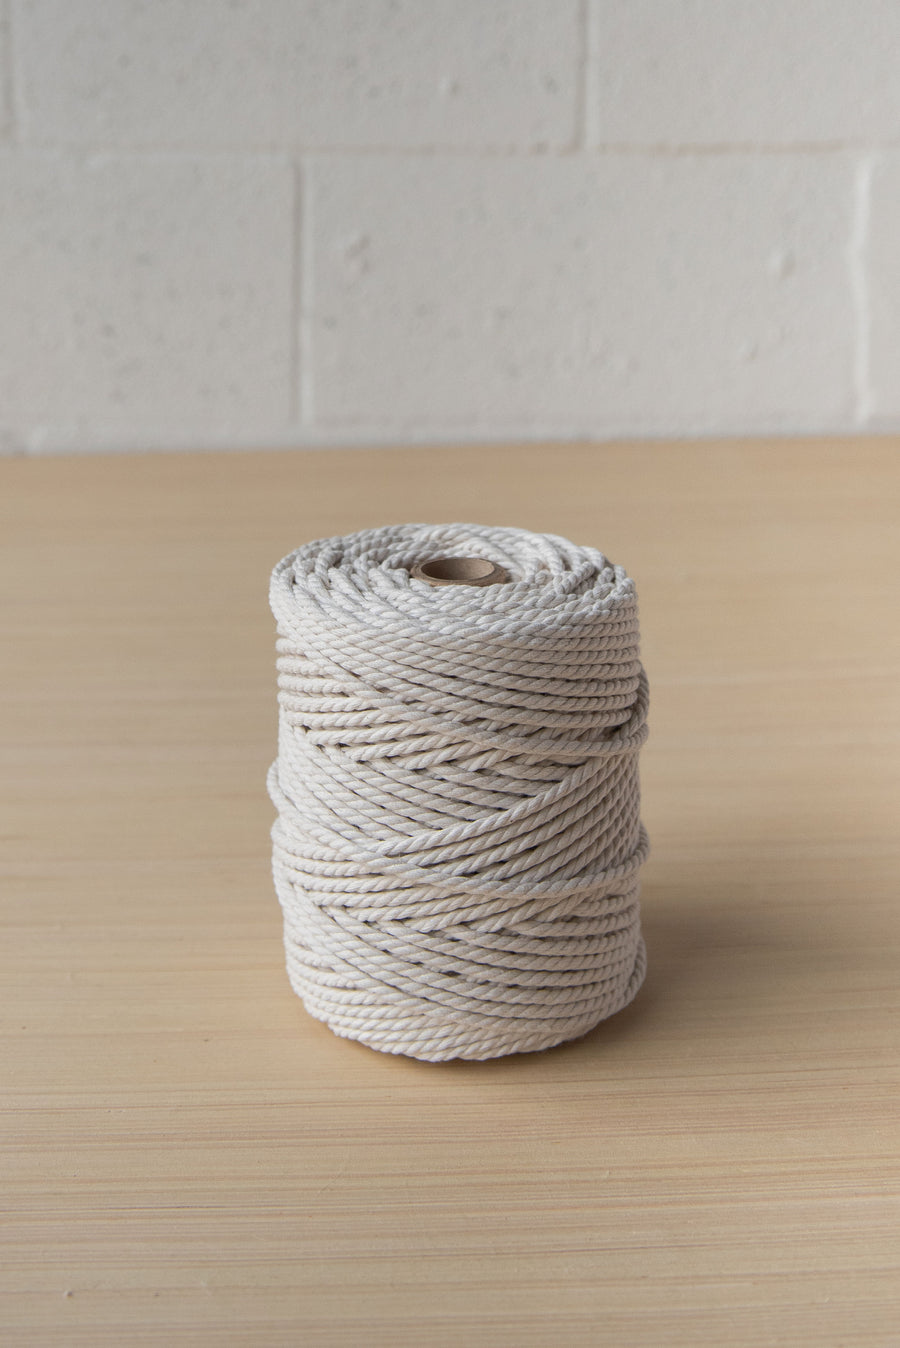 COTTON ROPE 3 MM - 3 PLY - NATURAL  COLOR